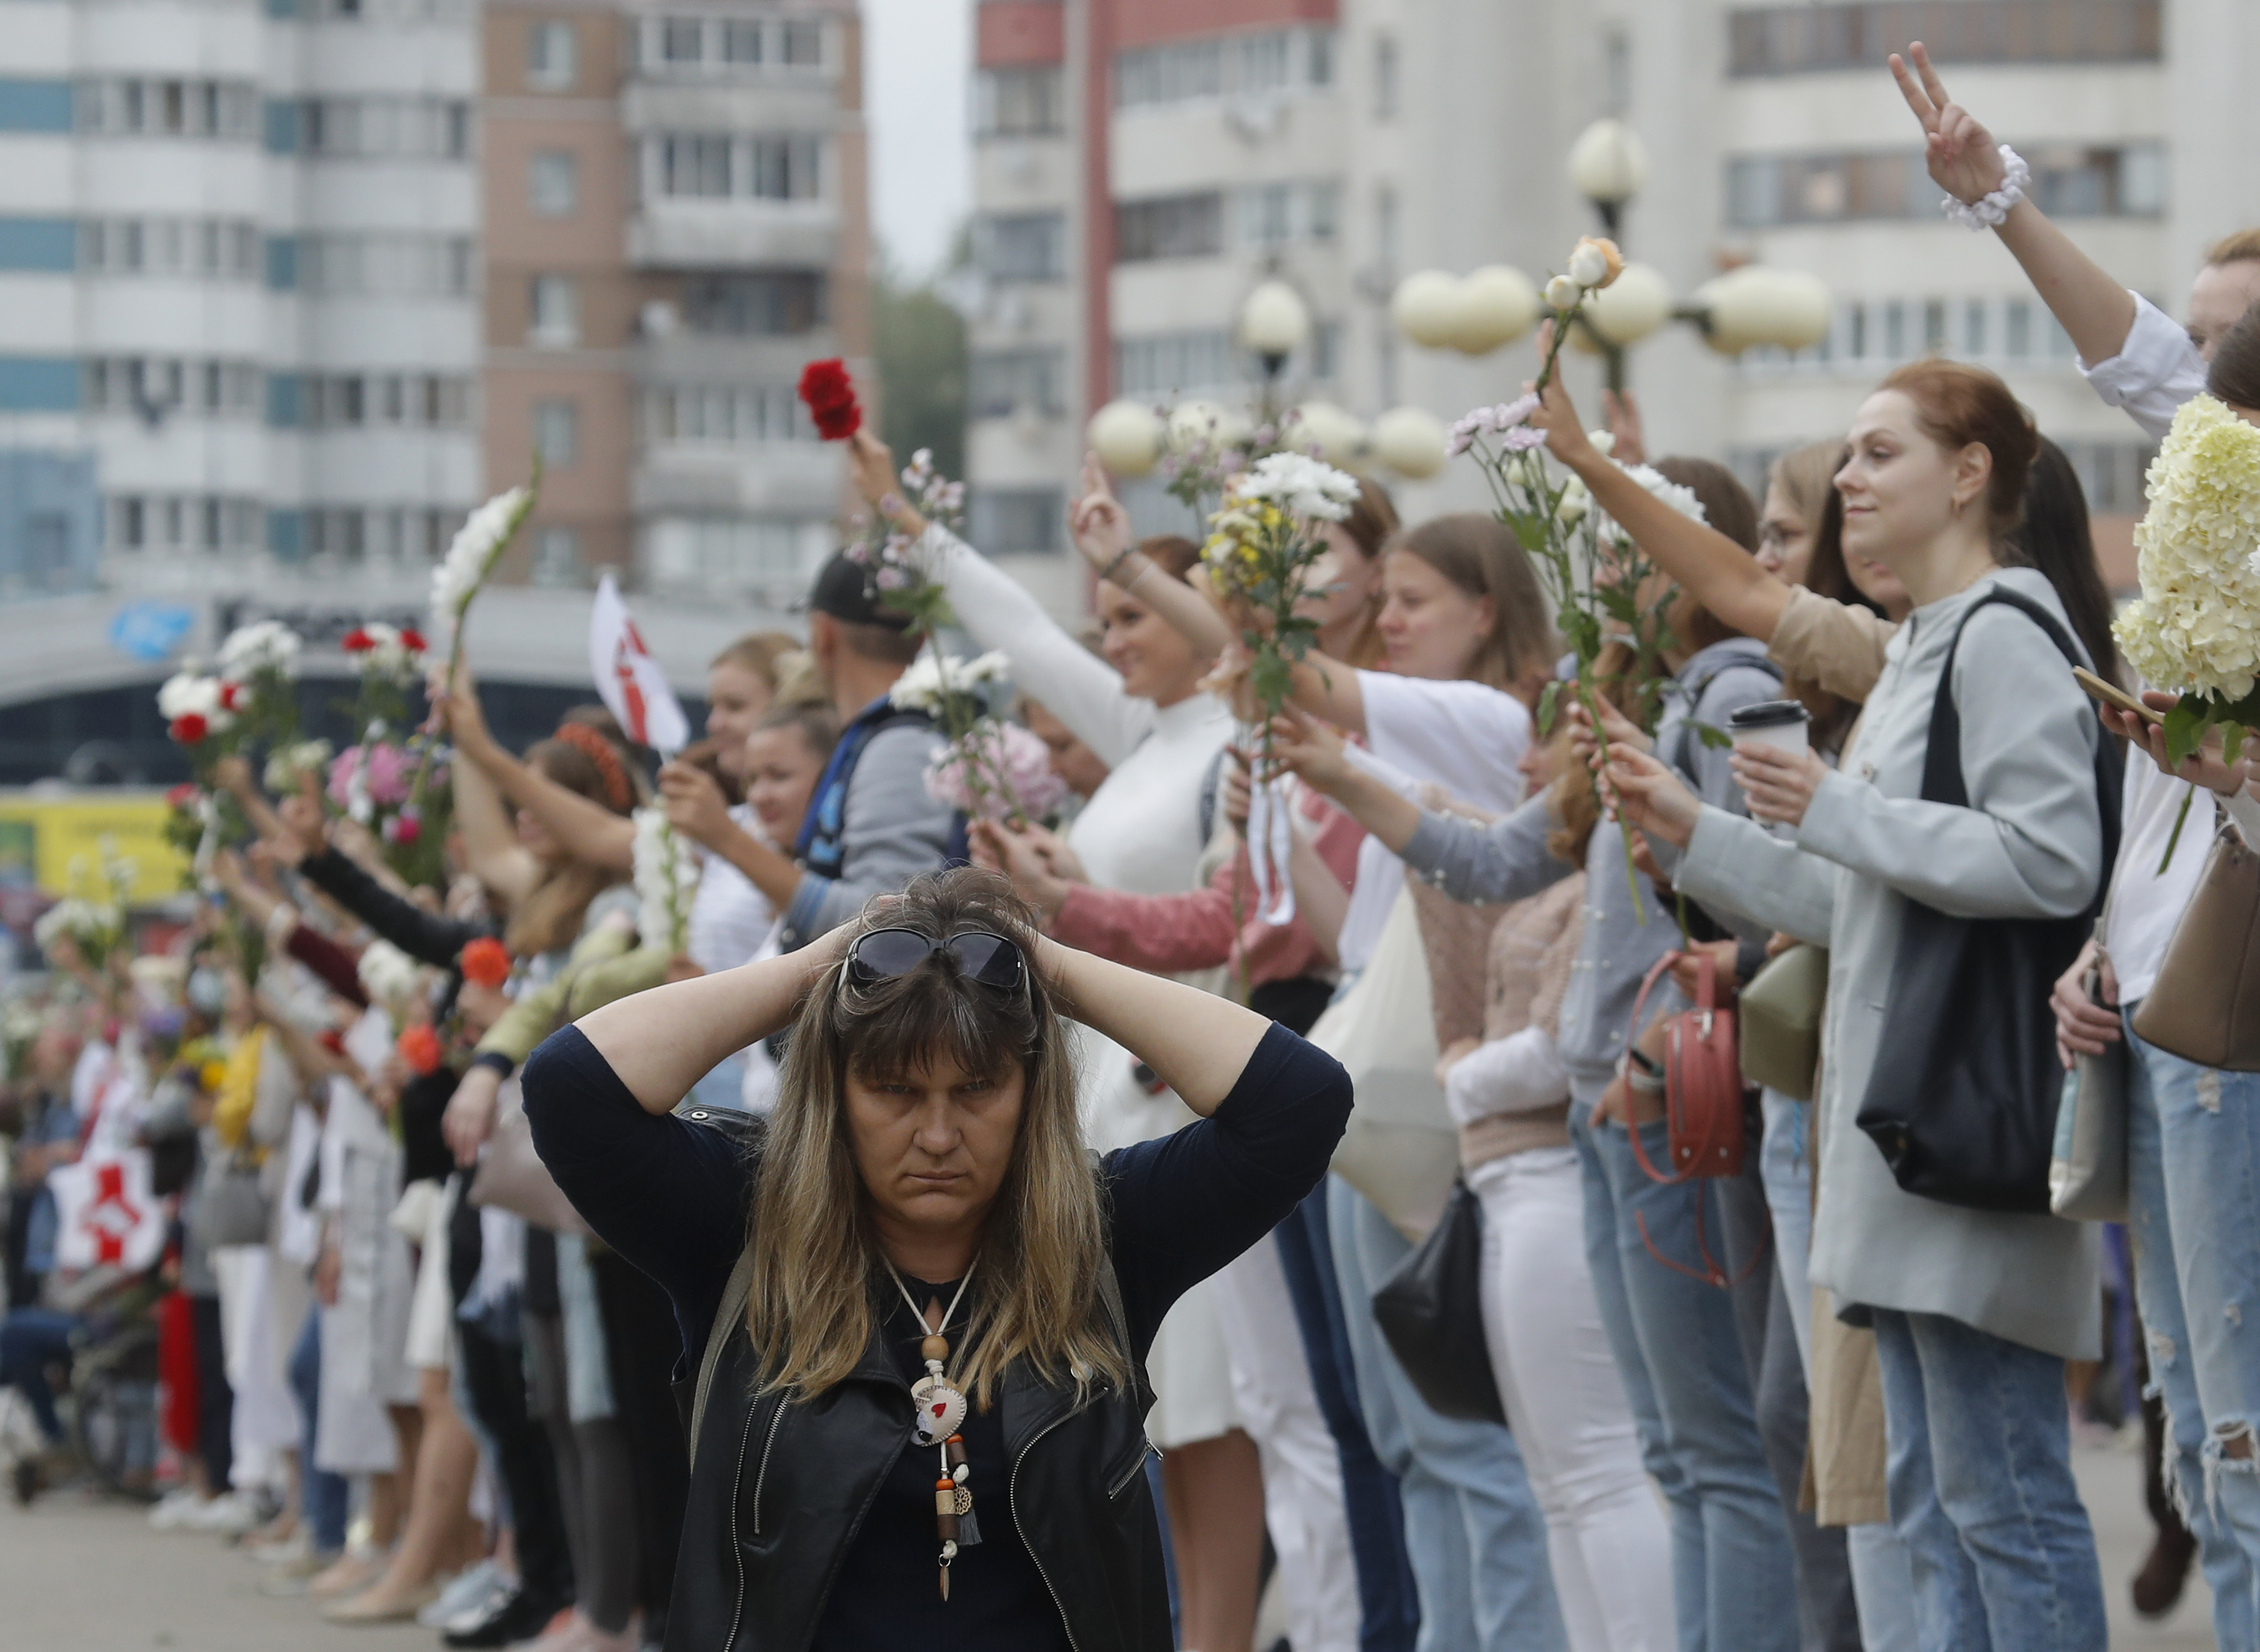 A woman kneels on the ground as people create a human chain during a protest in Minsk, Belarus, Saturday, Aug. 22, 2020. Demonstrators are taking to the streets of the Belarusian capital and other cities, keeping up their push for the resignation of the nation's authoritarian leader. President Alexander Lukashenko has extended his 26-year rule in a vote the opposition saw as rigged. Photo: AP